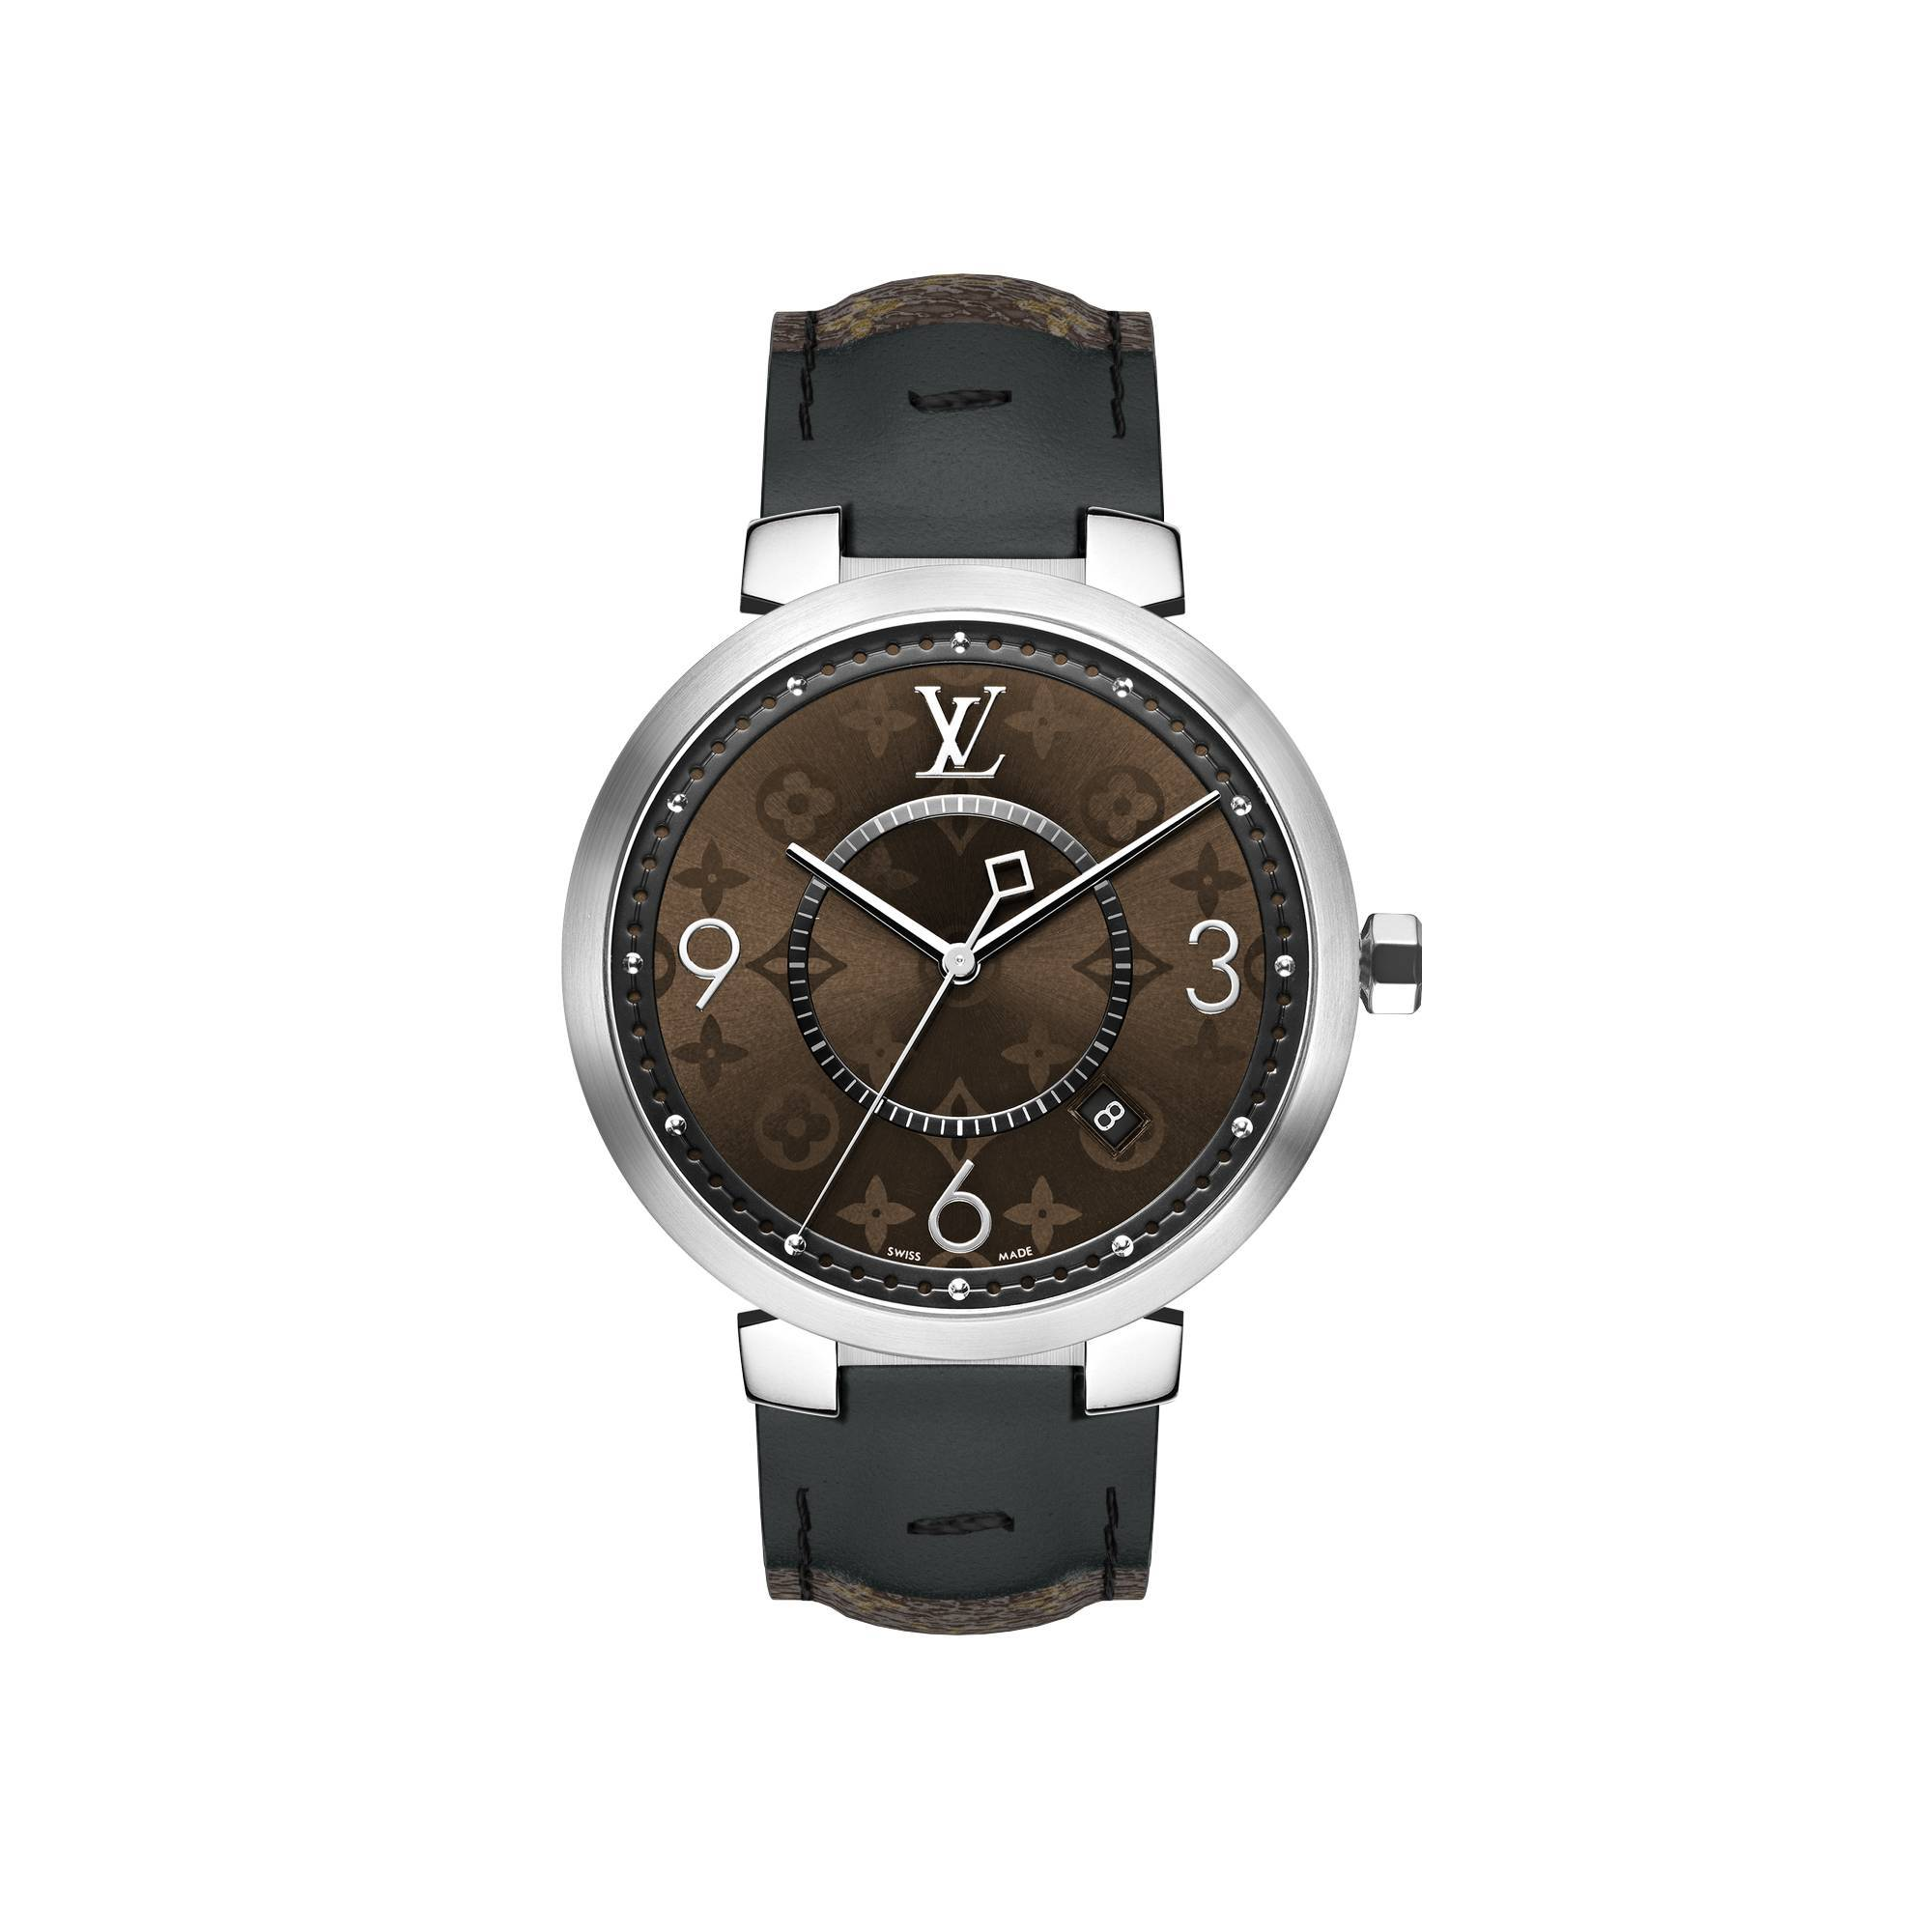 Louis Vuitton 10 Timepieces by Louis Vuitton for Men with a Luxury Lifestyle 10 Timepieces by Louis Vuitton for Men with a Luxury Lifestyle 9